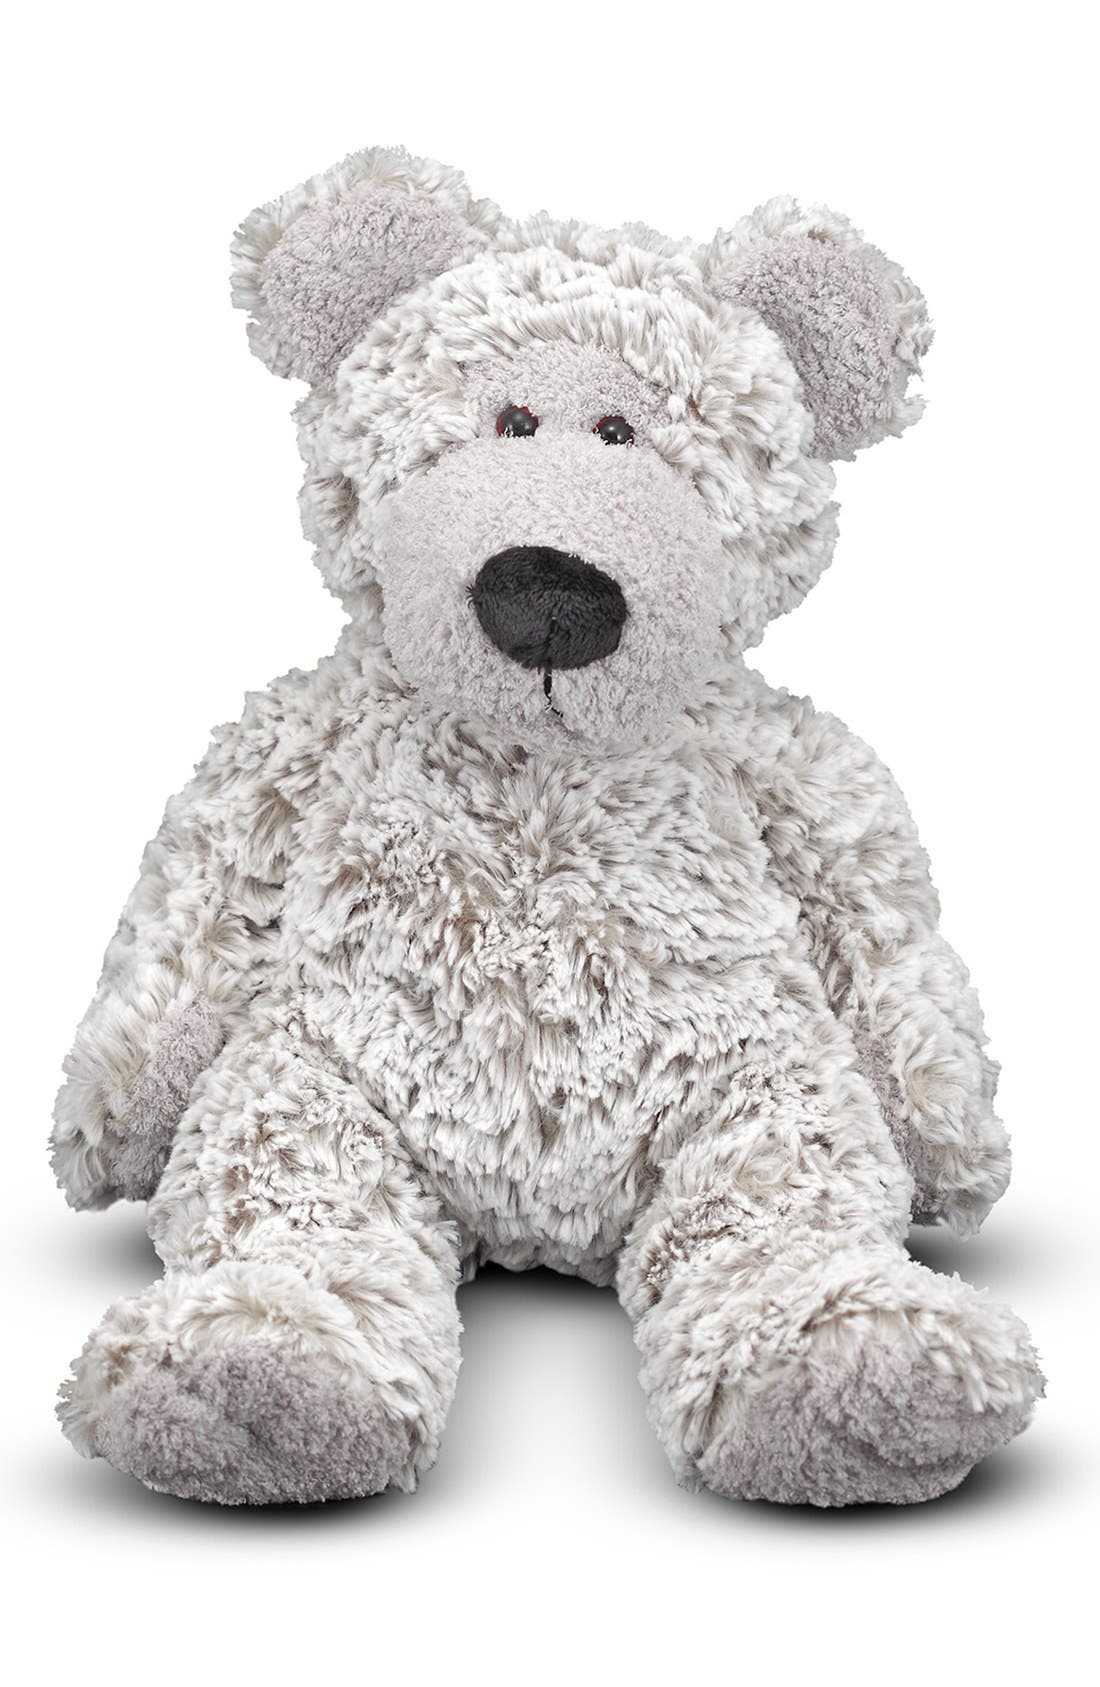 Melissa & Doug 'Greyson' Stuffed Bear